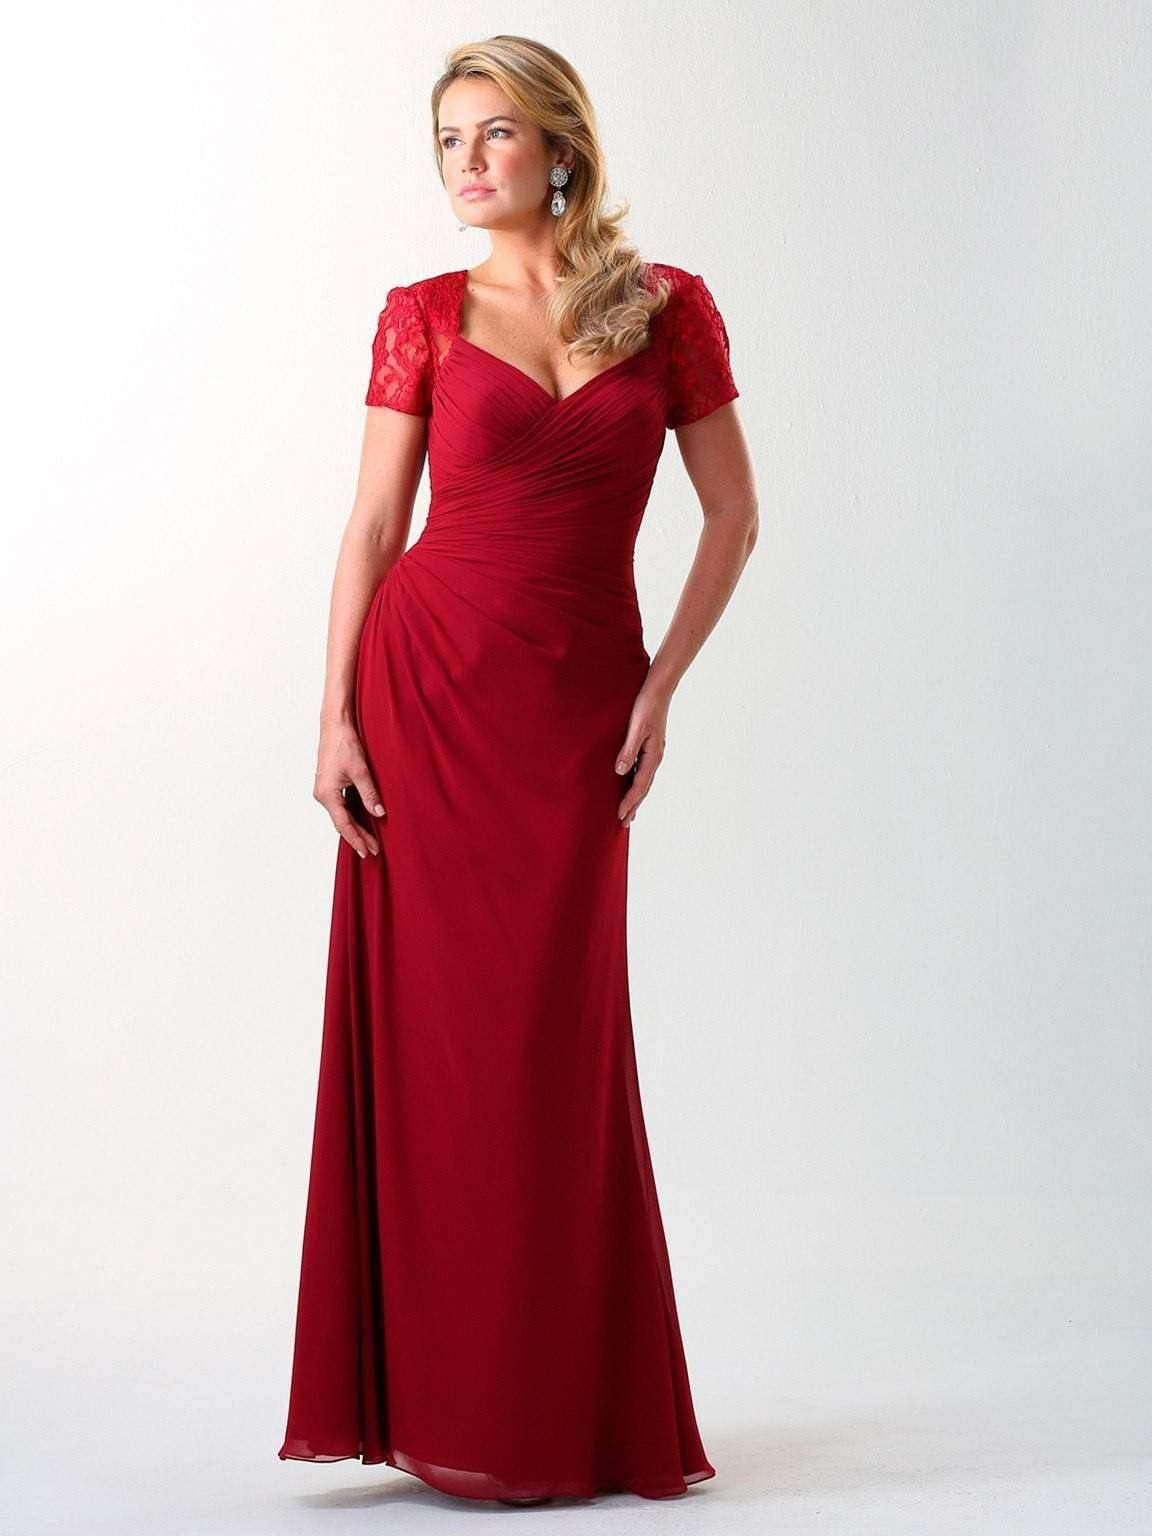 UK18 BURGUNDY - REBECCA - SALE - Adore Bridal and Occasion Wear